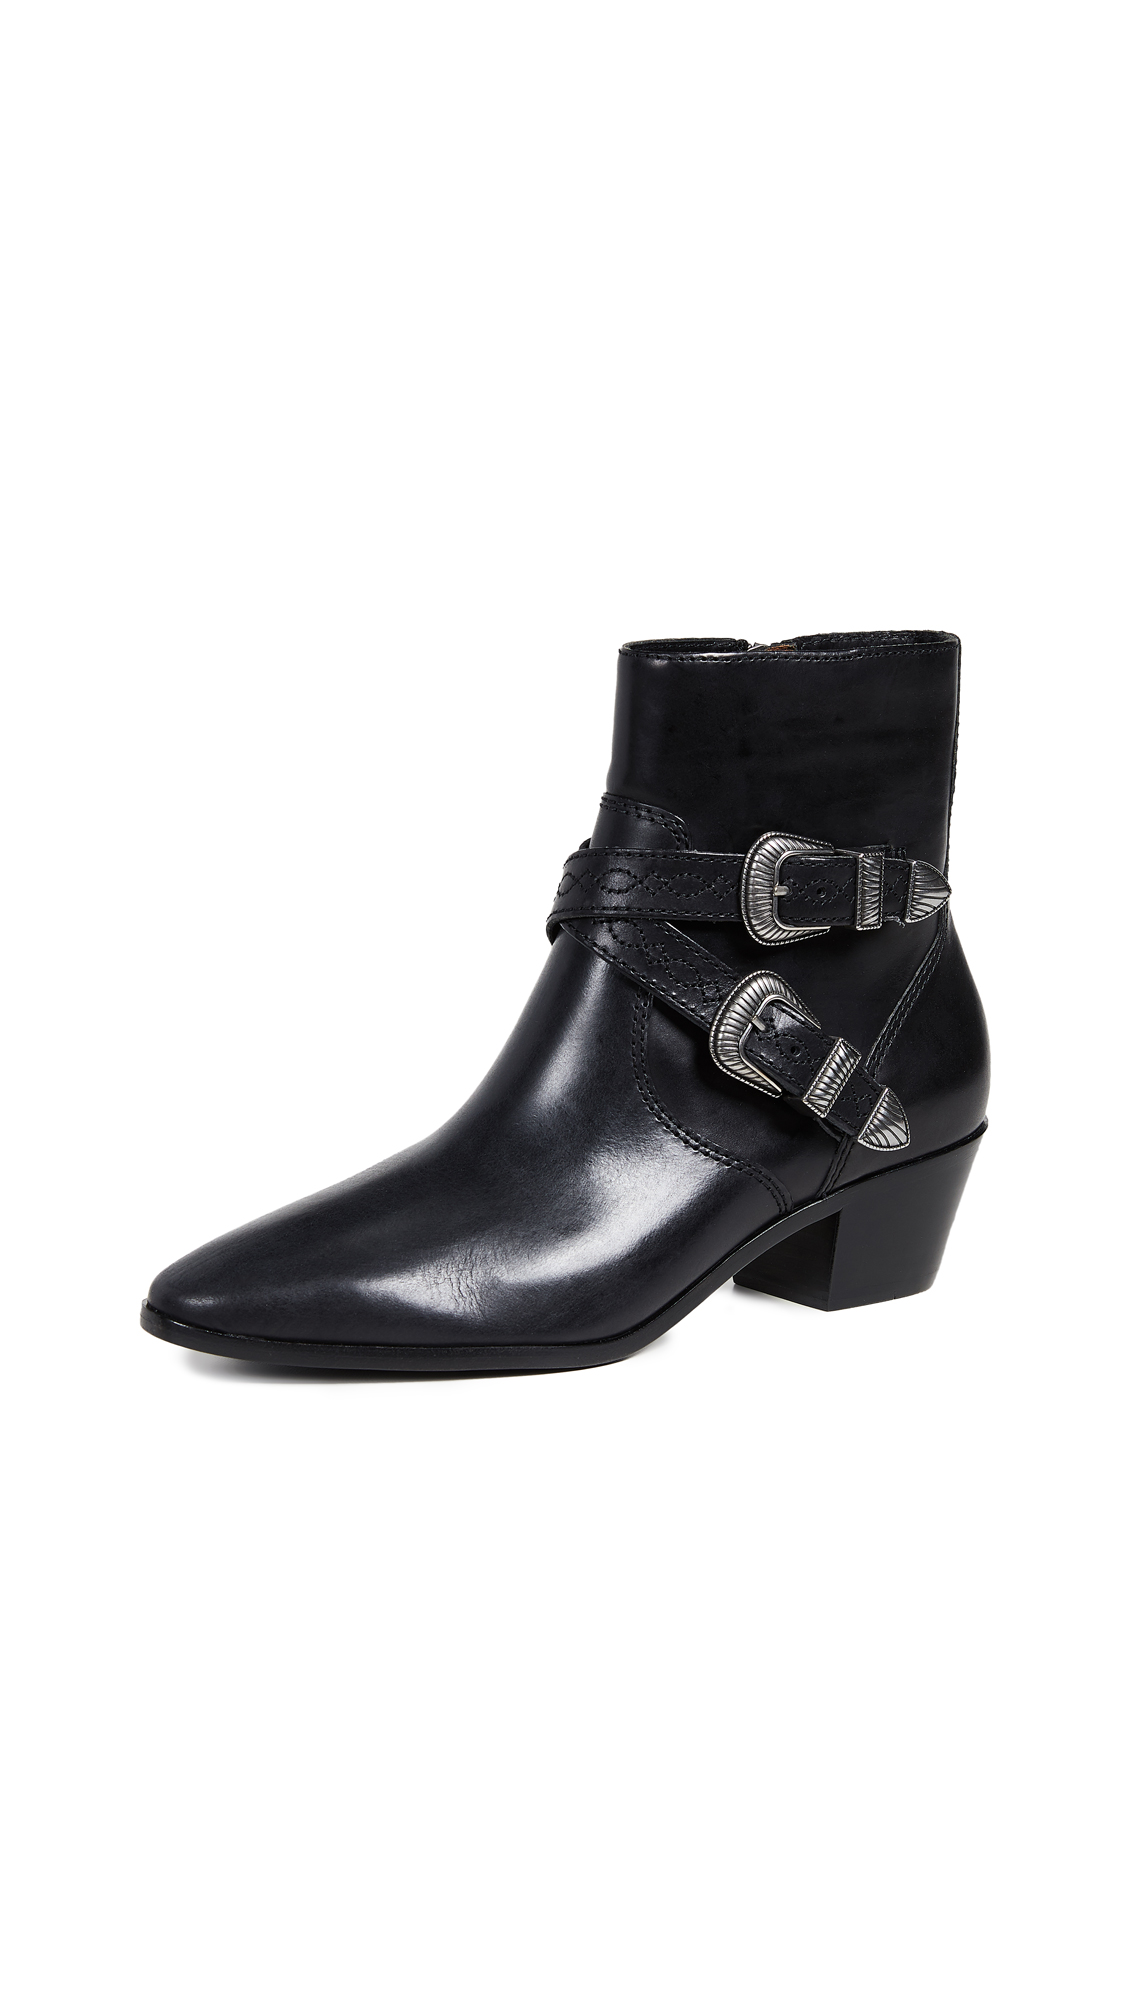 Frye Ellen Buckle Short Boots - Black